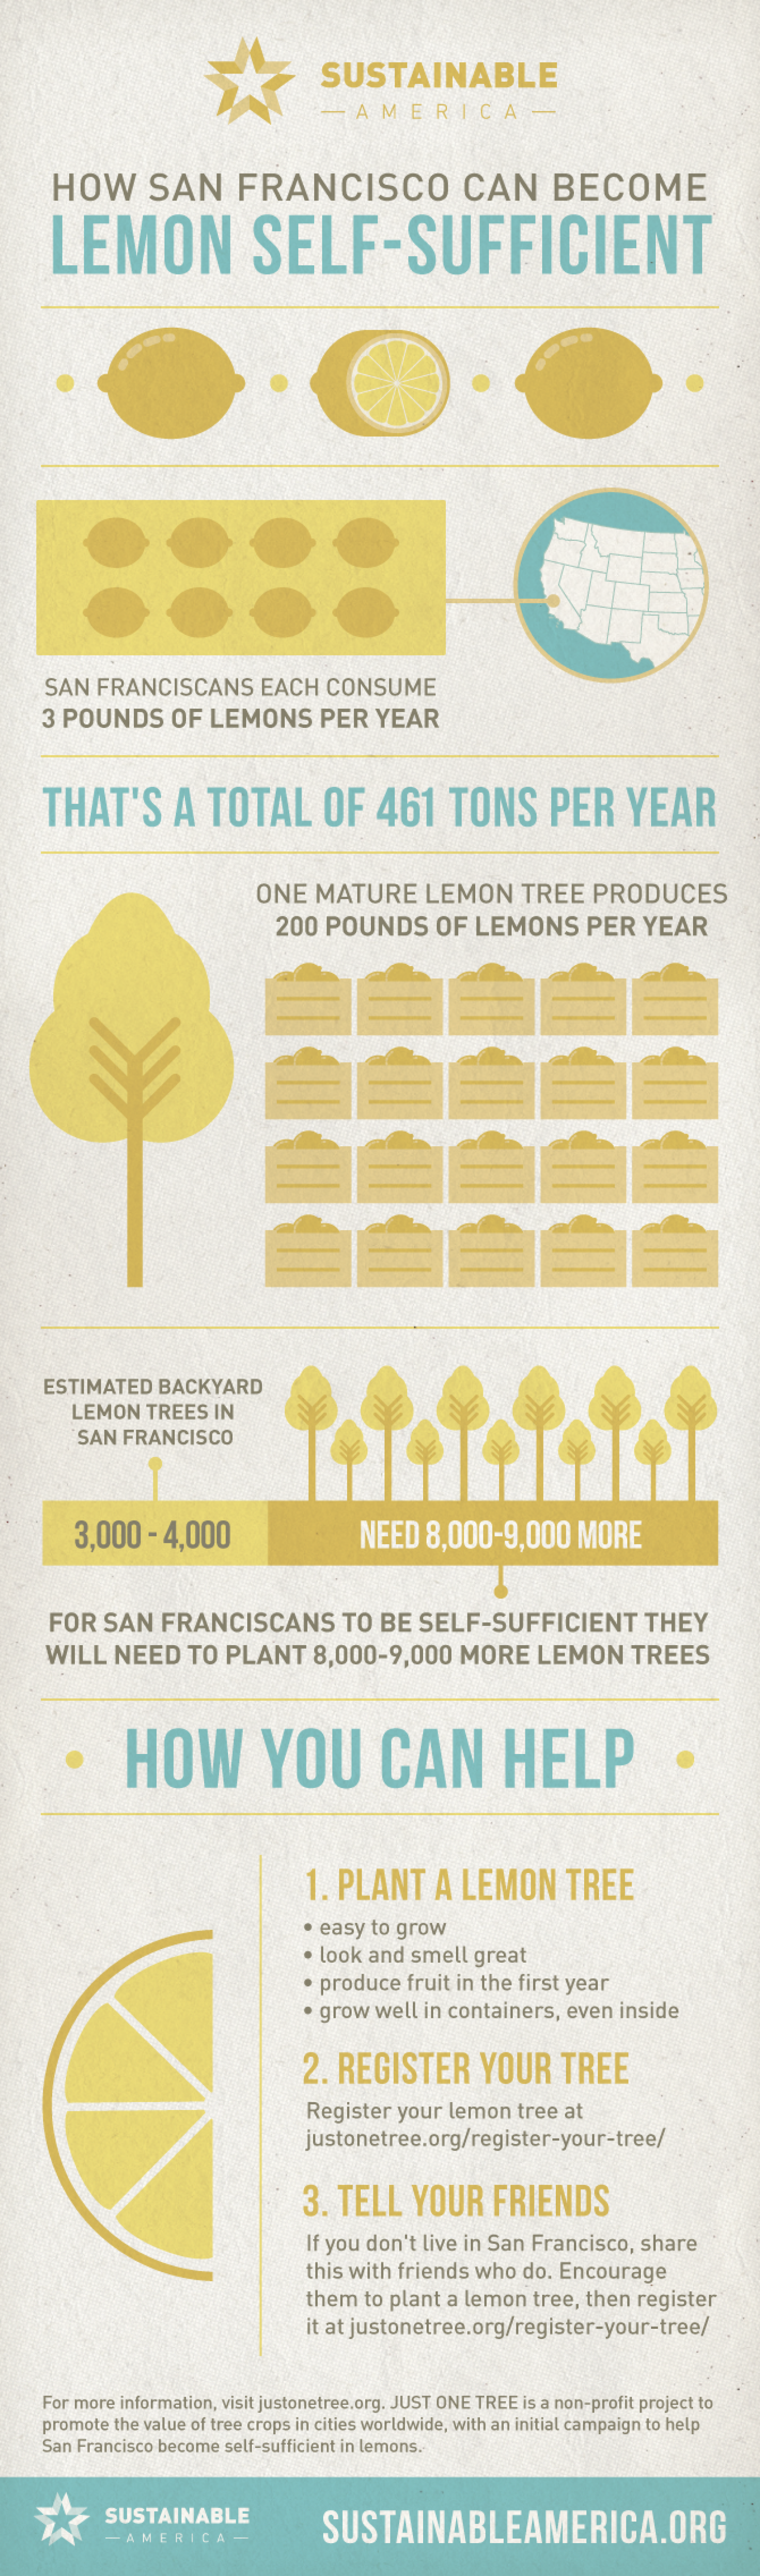 Lemon Trees for All in San Francisco Infographic